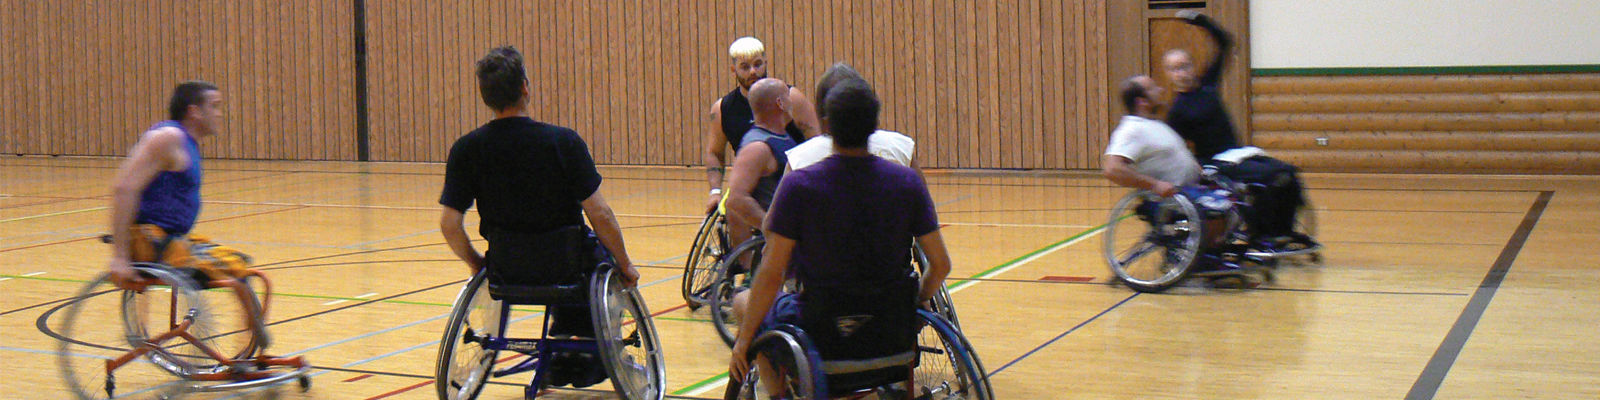 A group of man in wheelchairs playing basketball